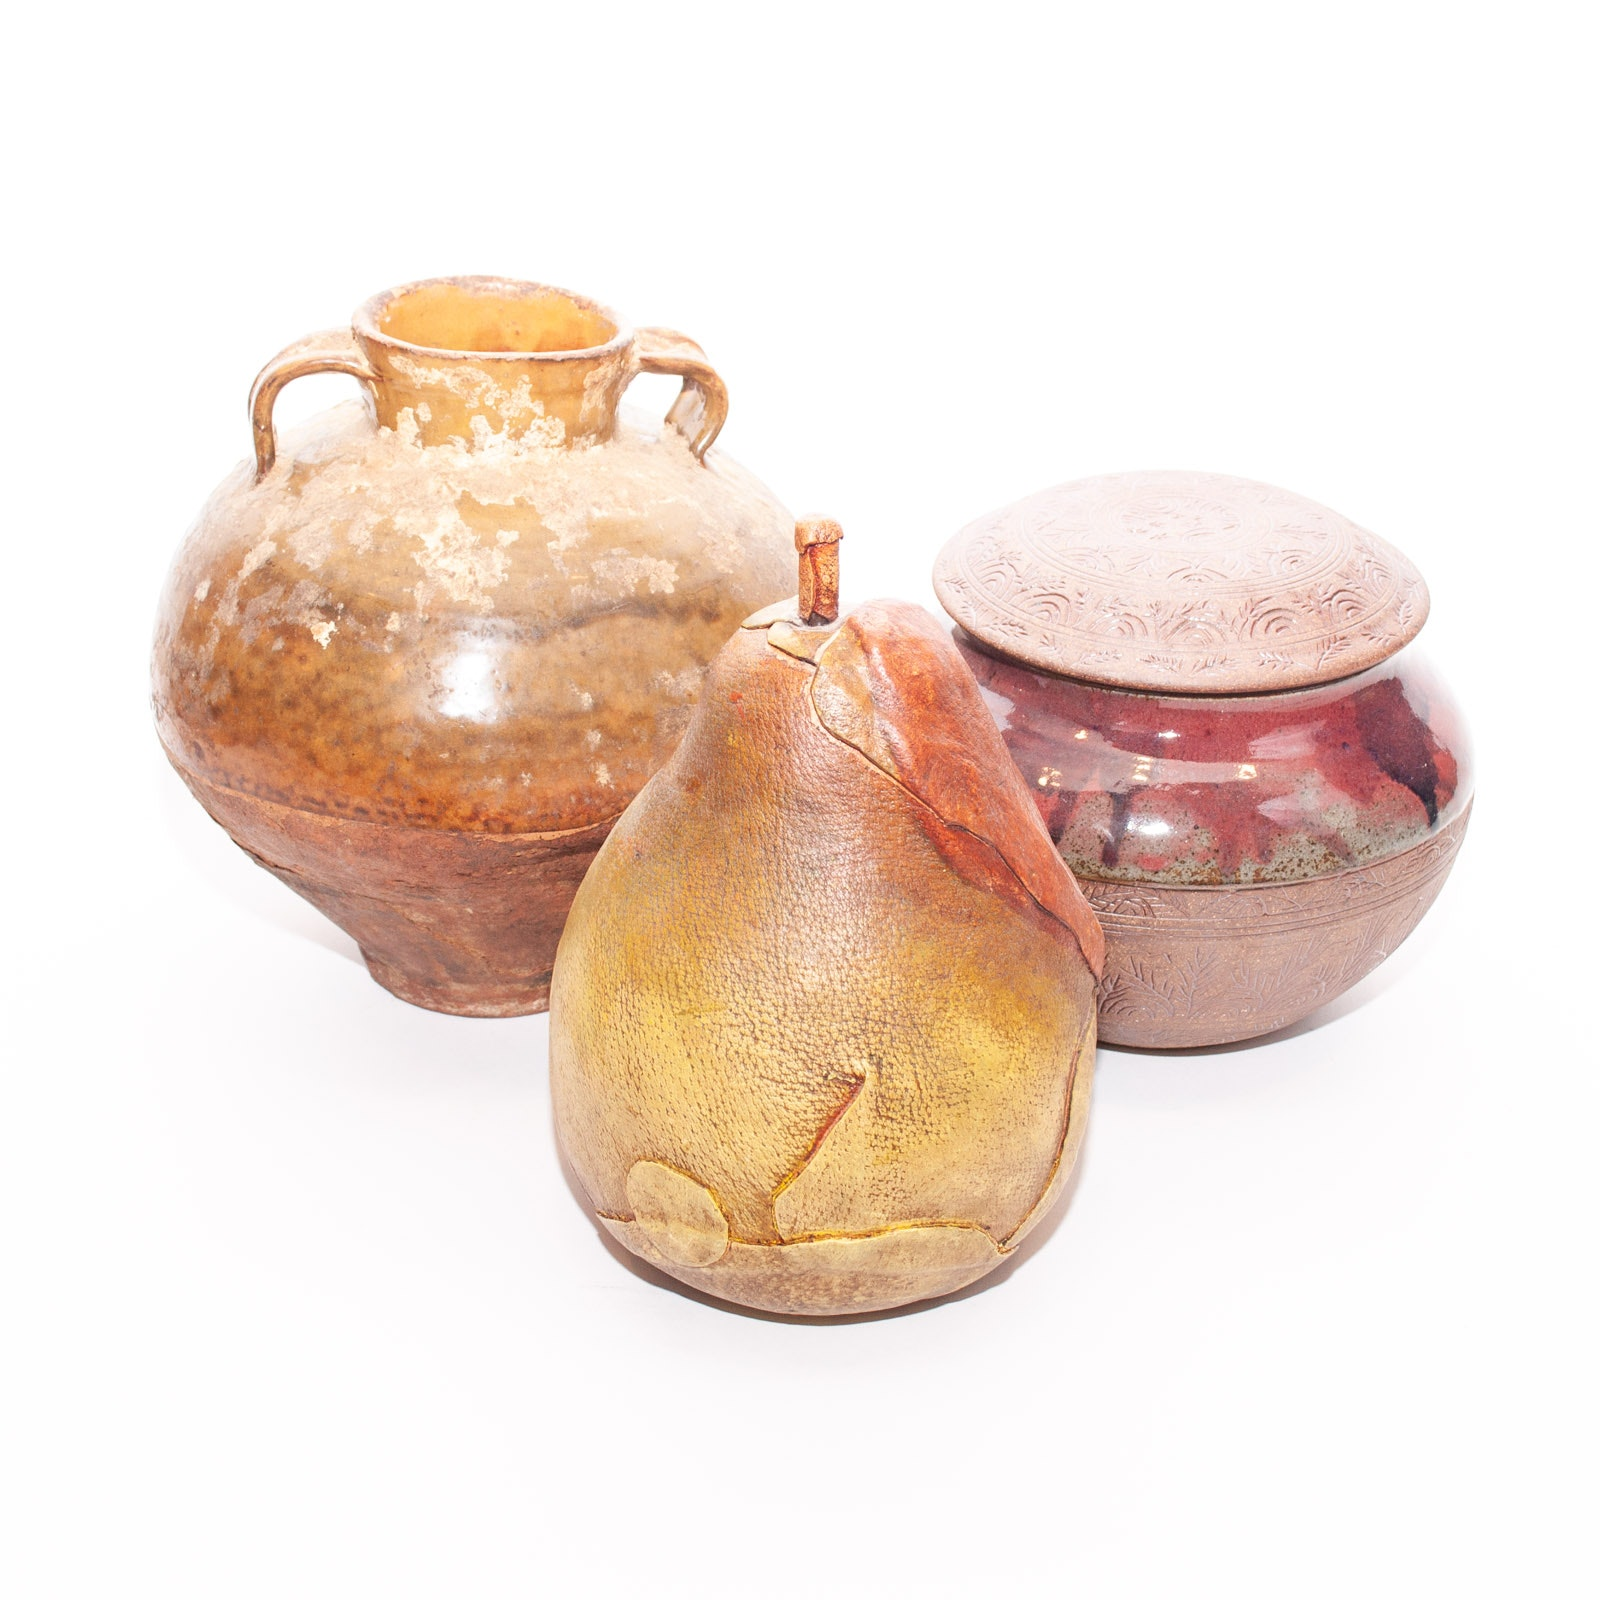 Decorative Pottery Pots Including Hand Built and Intentionally Distressed Pots